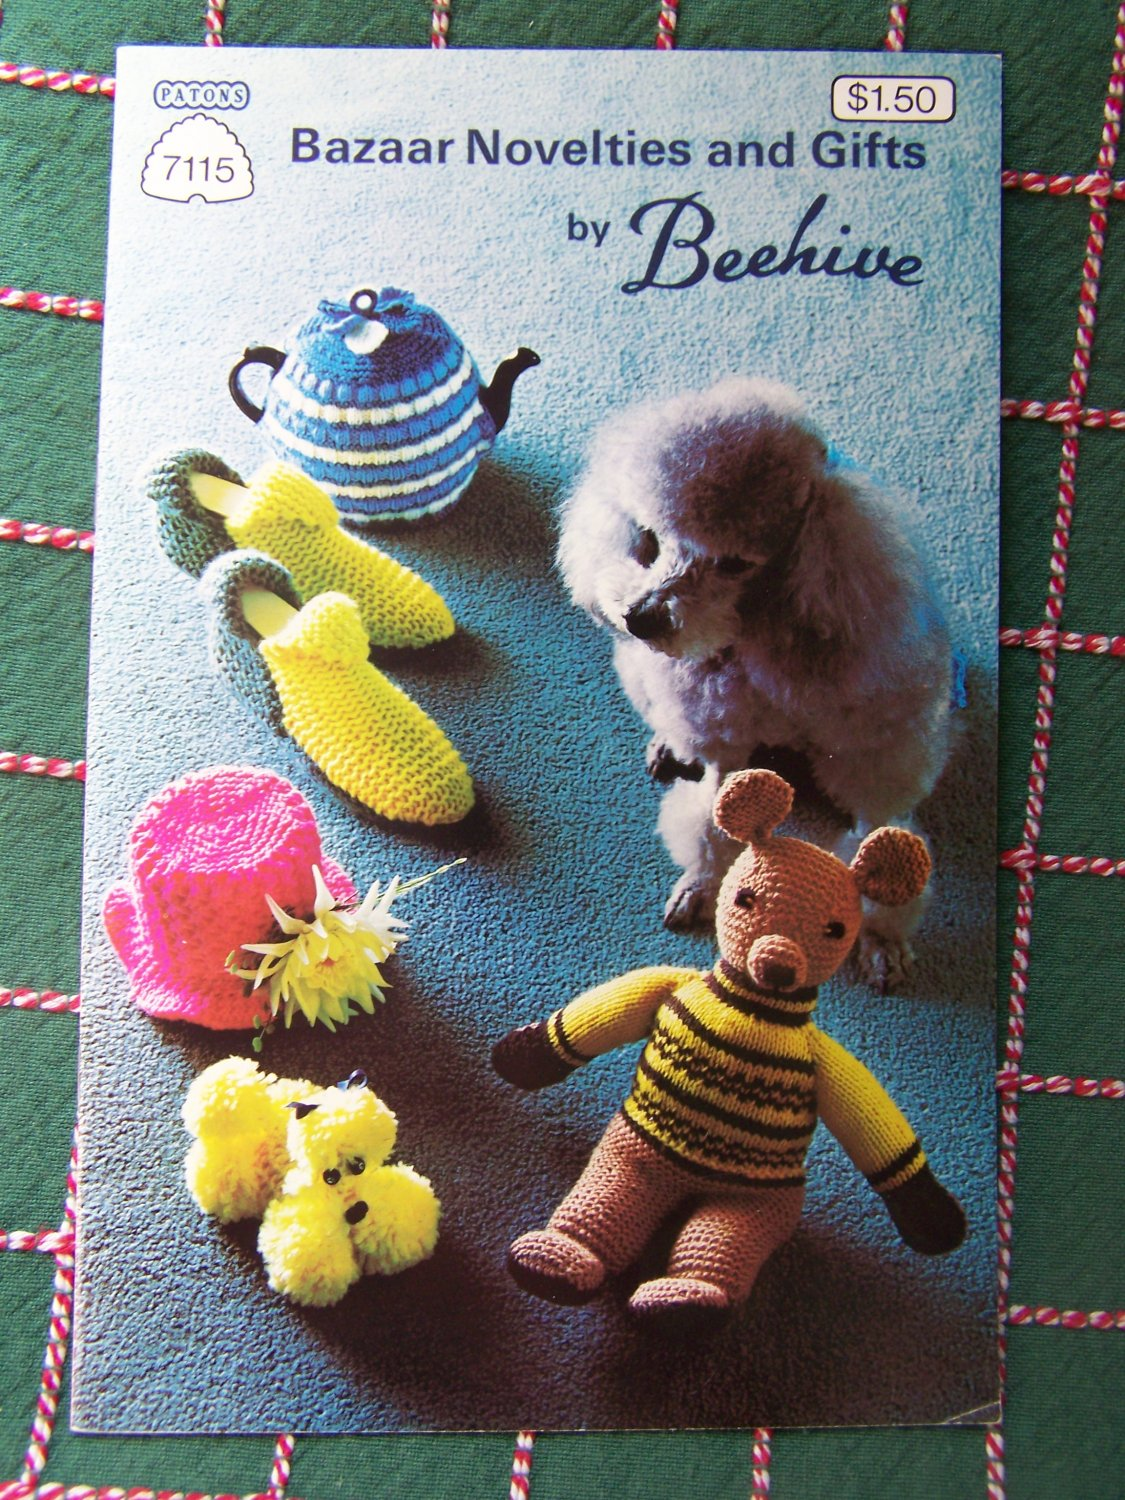 Vintage Beehive Patons Knitting & Crochet Patterns Bazaar Novelties and Gifts 7115